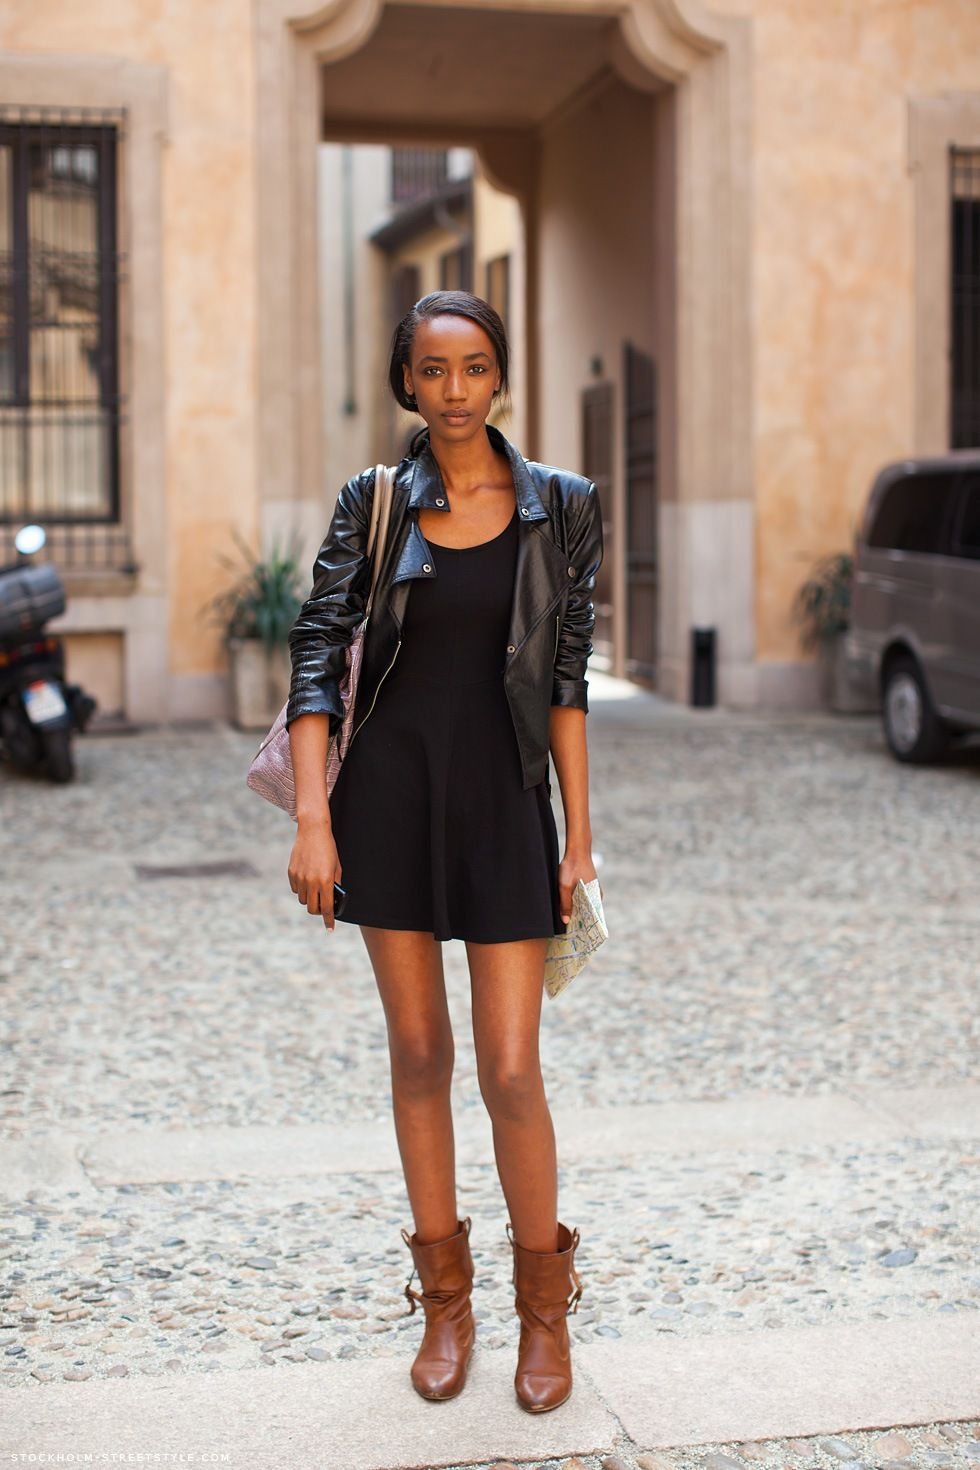 black dress and leather jacket & brown boots | Street Style ...